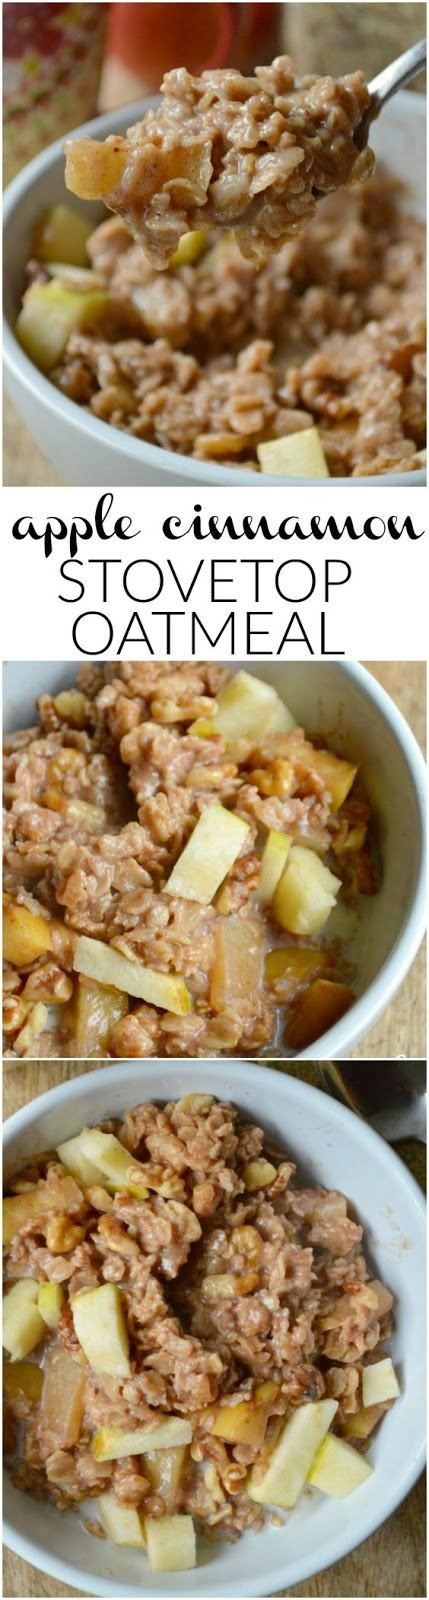 Apple Cinnamon Stovetop Oatmeal